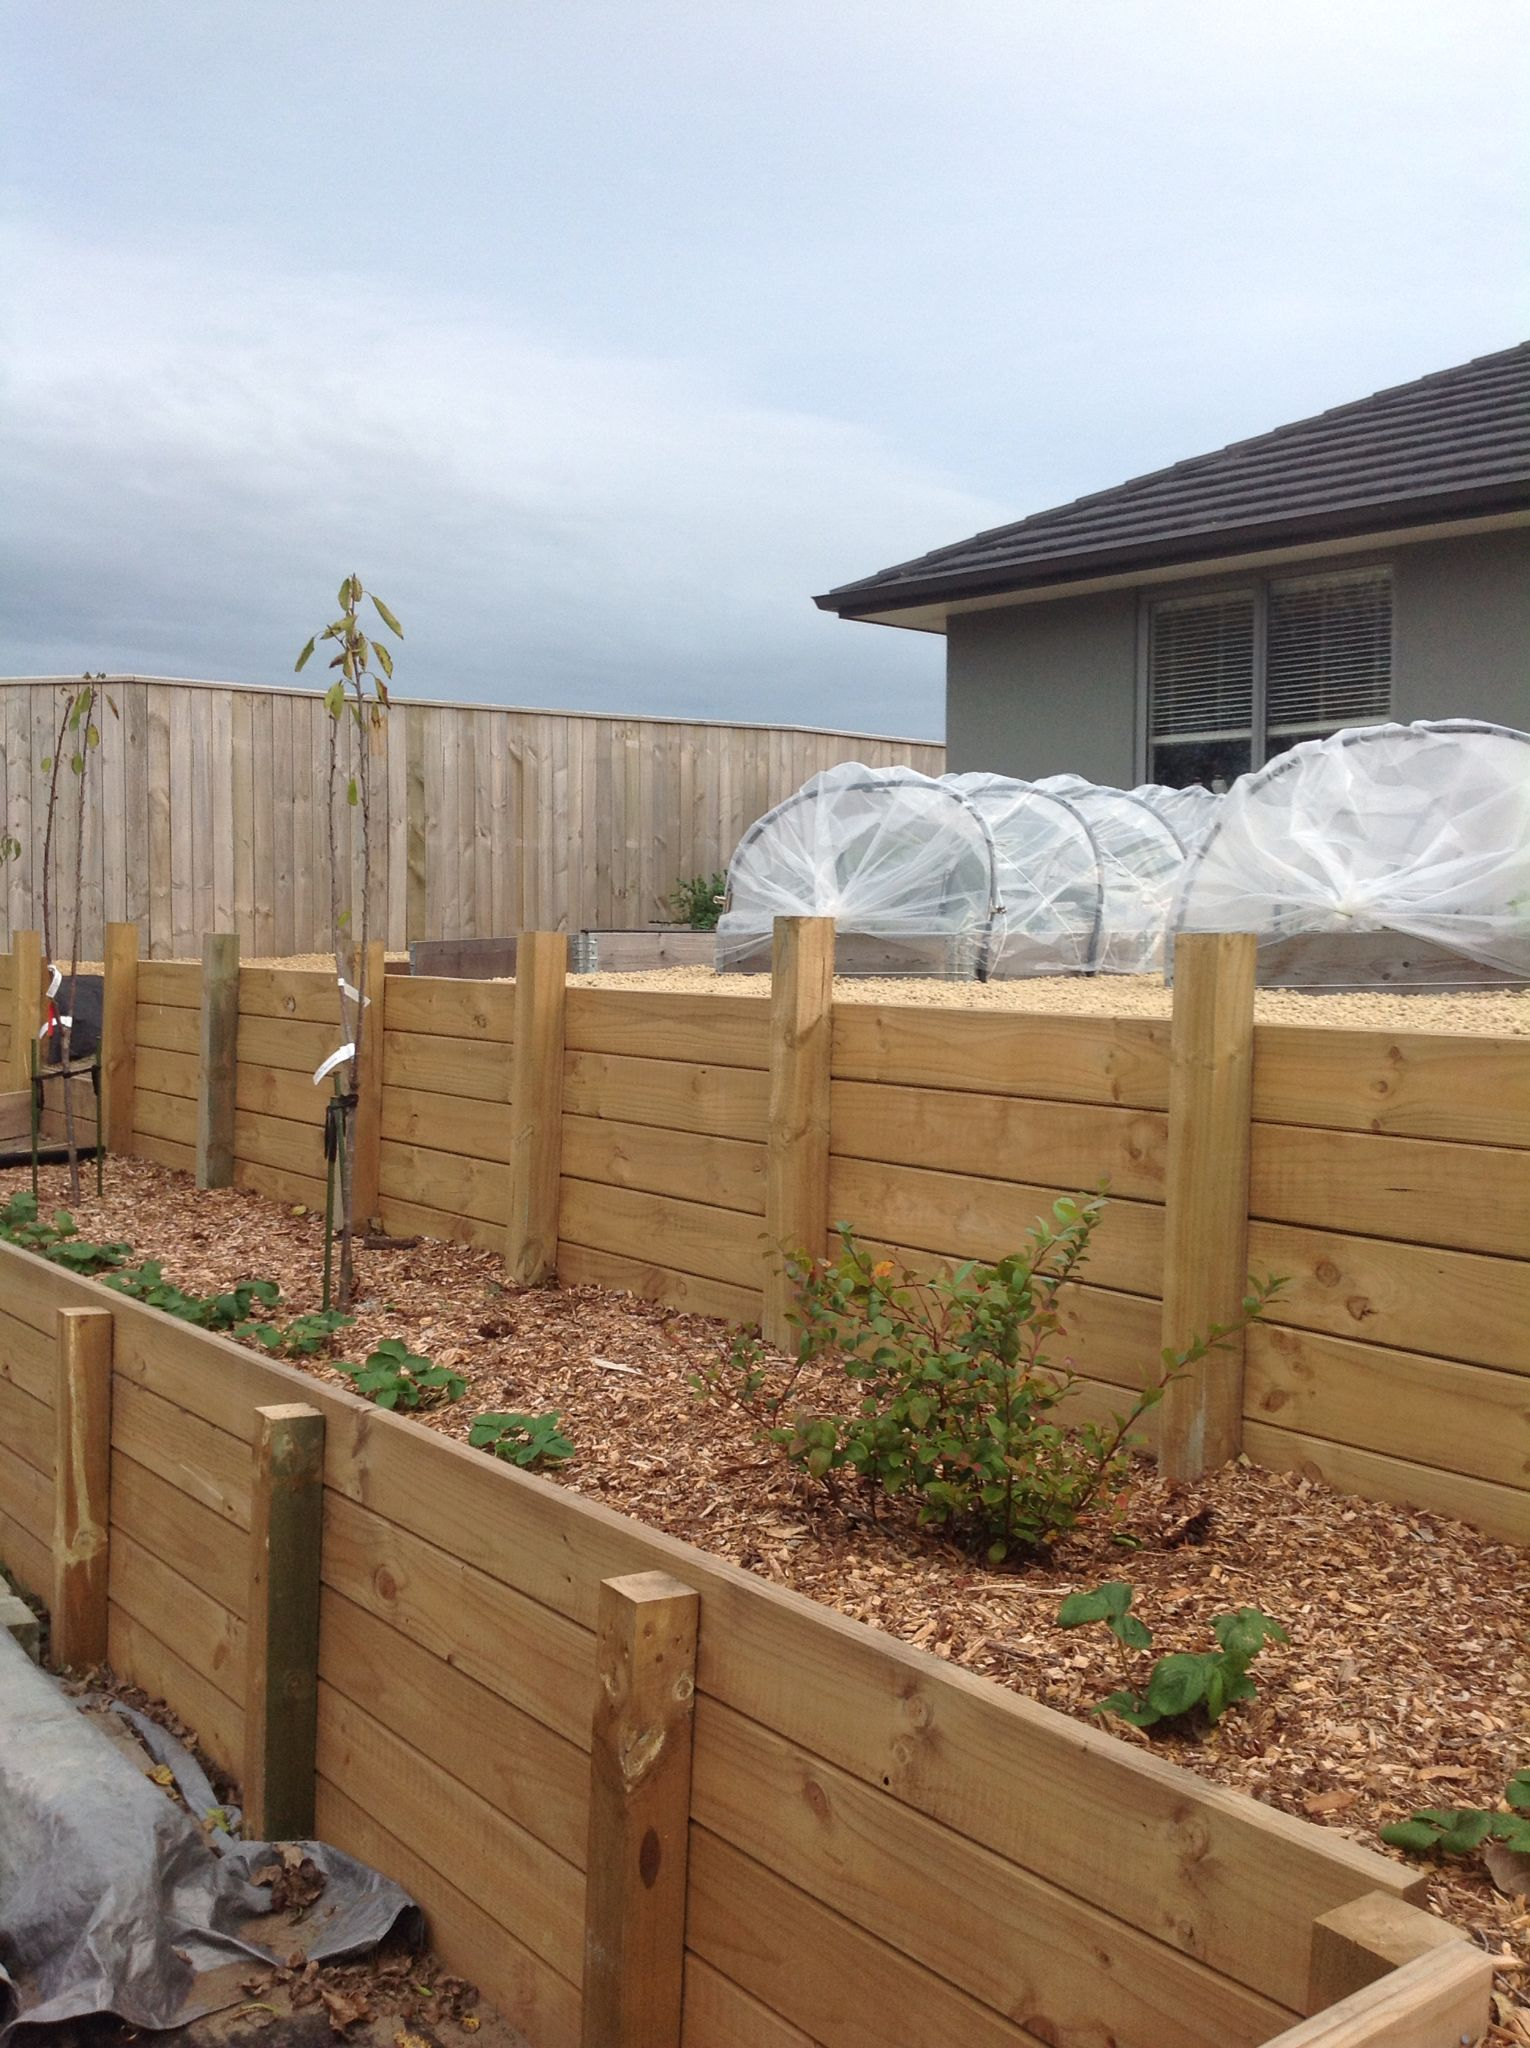 Garden bed with trees  Pin by Sabrina Breuker on Garden  Pinterest  Peach trees and Gardens